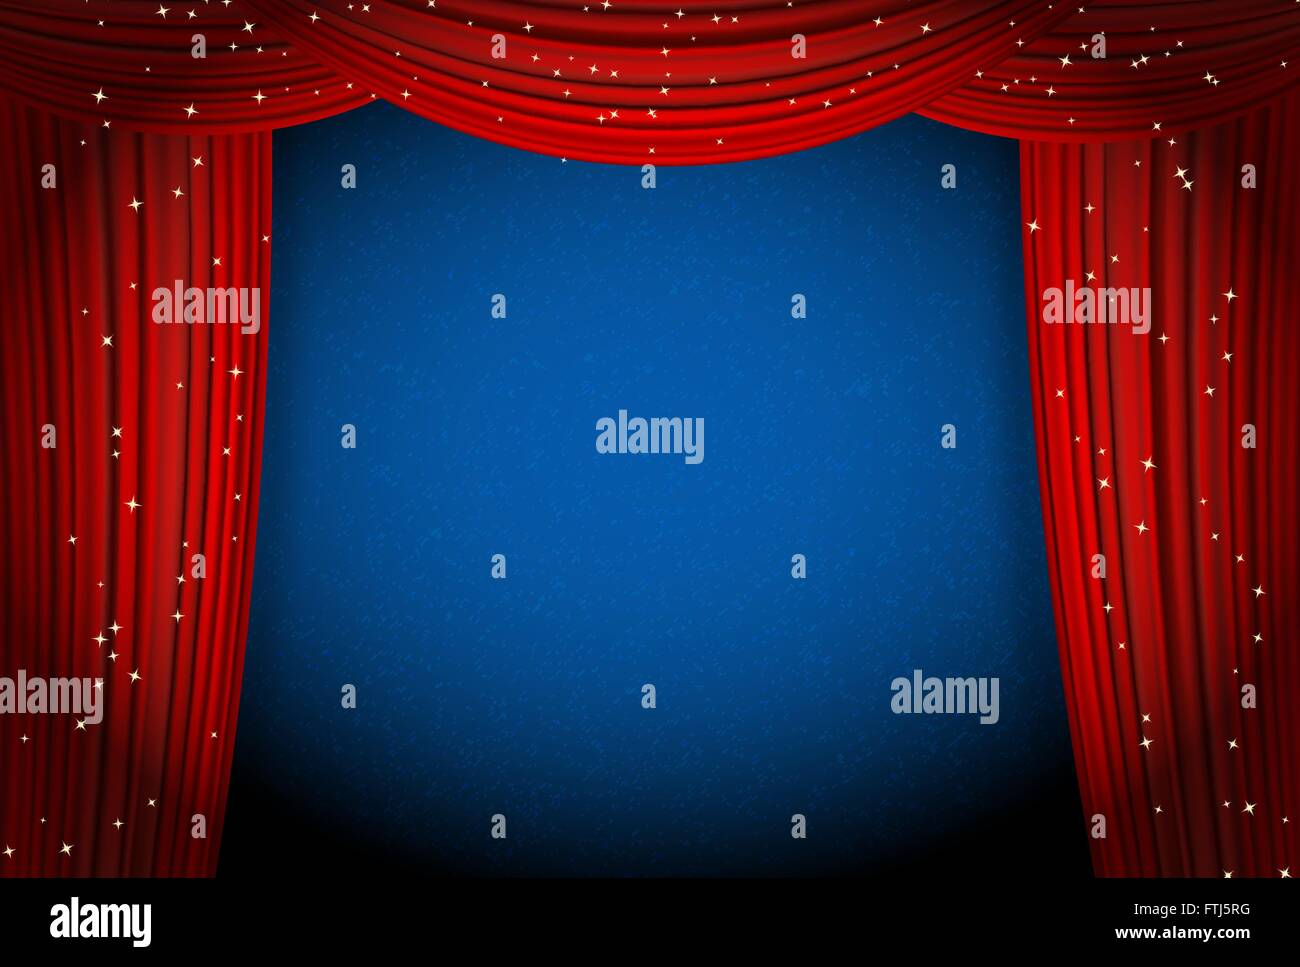 Theater curtains download free vector art stock graphics amp images - Stage Curtain Background With Lights Stage Curtain Vector Html Code Blue Stage Curtain Background Blue